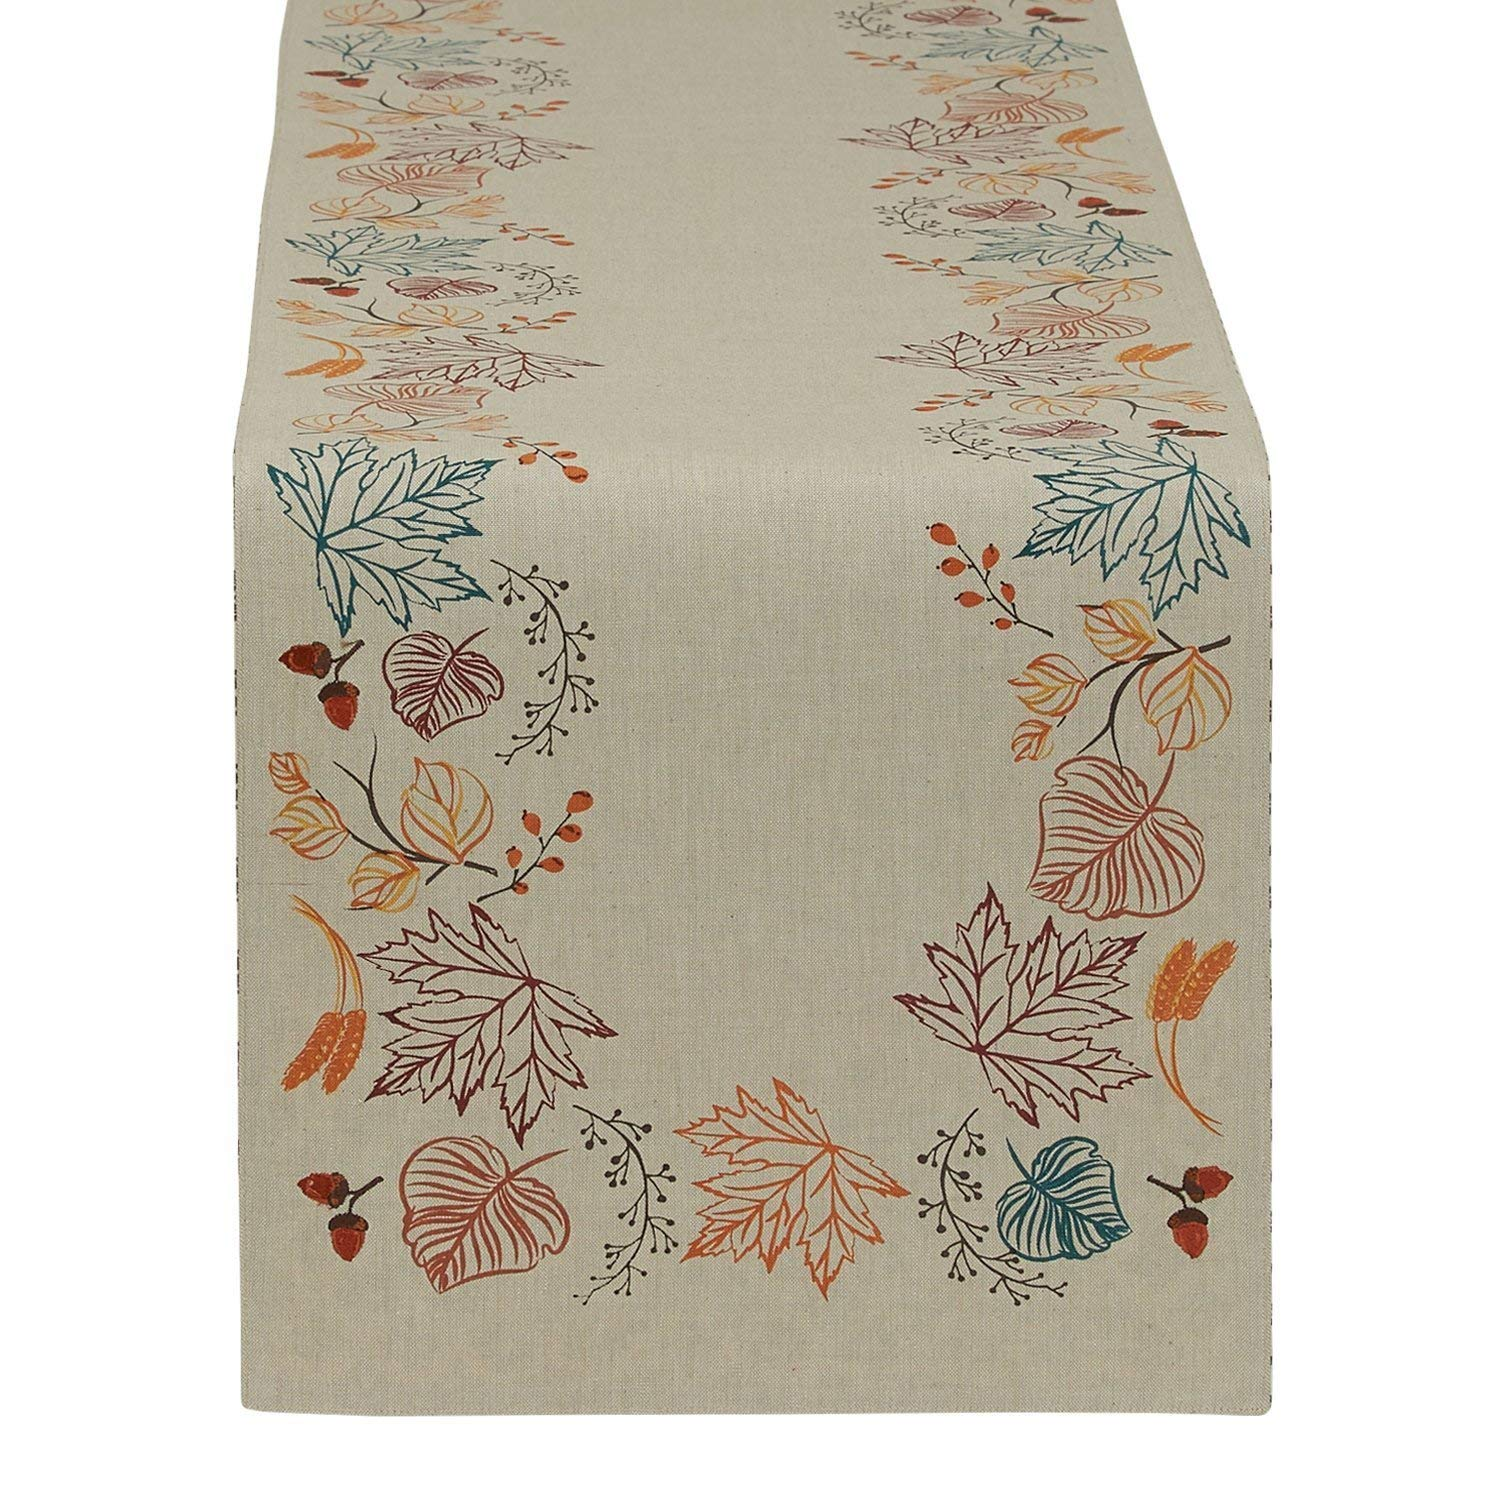 Design Imports Autumn Leaves Embellished Table Runner (14'' x 72'') (Autumn Leaves)